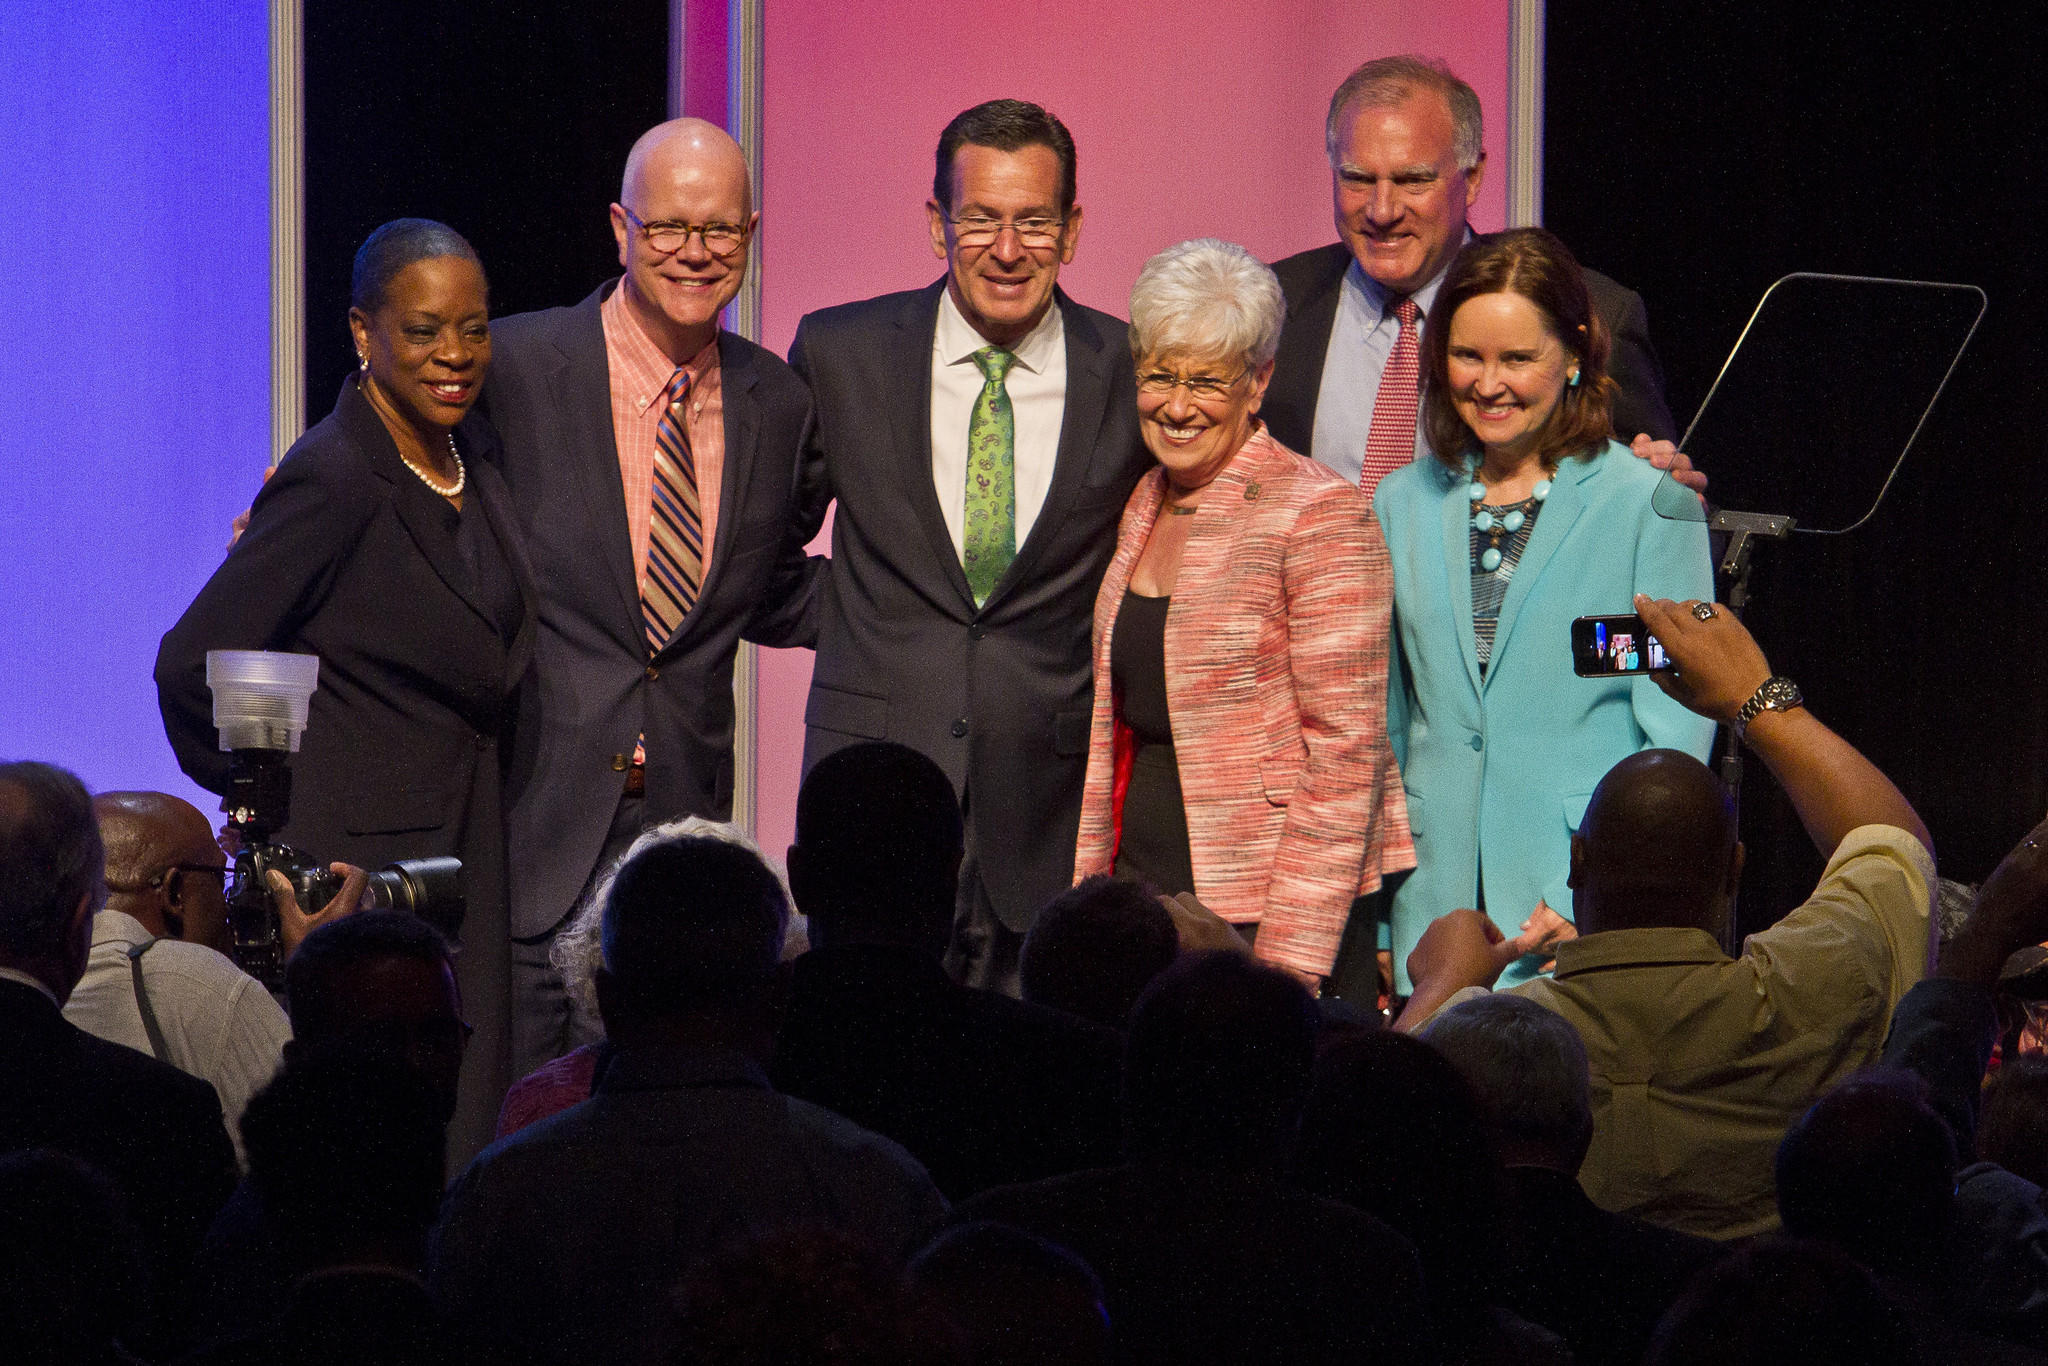 The Democratic nominees for election in November all gather at the stage for photos at the end of the Democratic Convention. From left, State Treasurer Denise Nappier, State Comptroller Kevin Lembo, Gov. Dan Malloy, Lt. Gov. Nancy Wyman, Attorney General George Jespen and Secretary of State Denise Merrill.